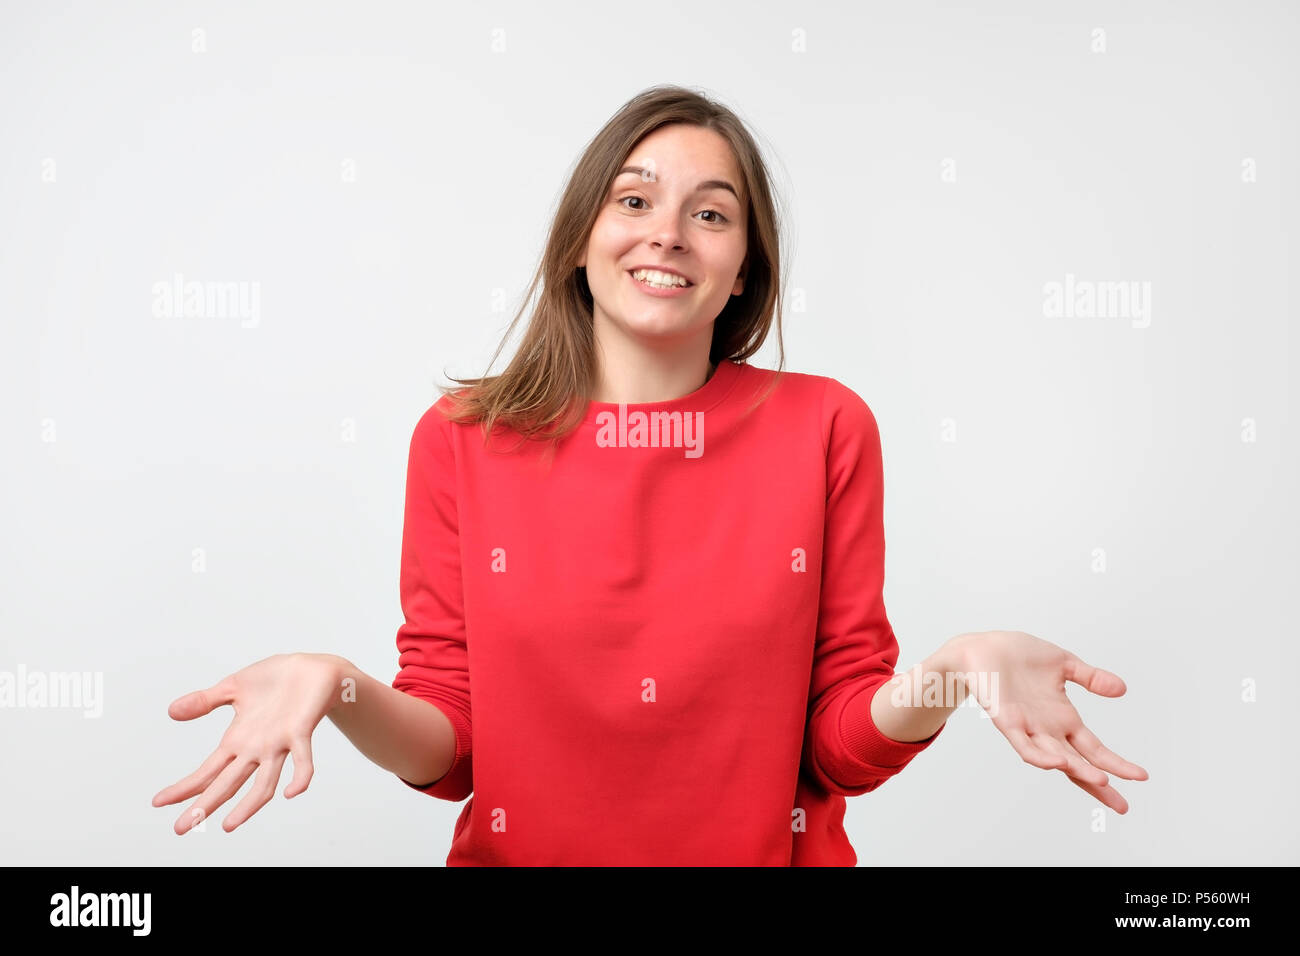 Young woman in red sweater standing disorientated bewildered isolated on gray wall background. Decision making concept. Stock Photo